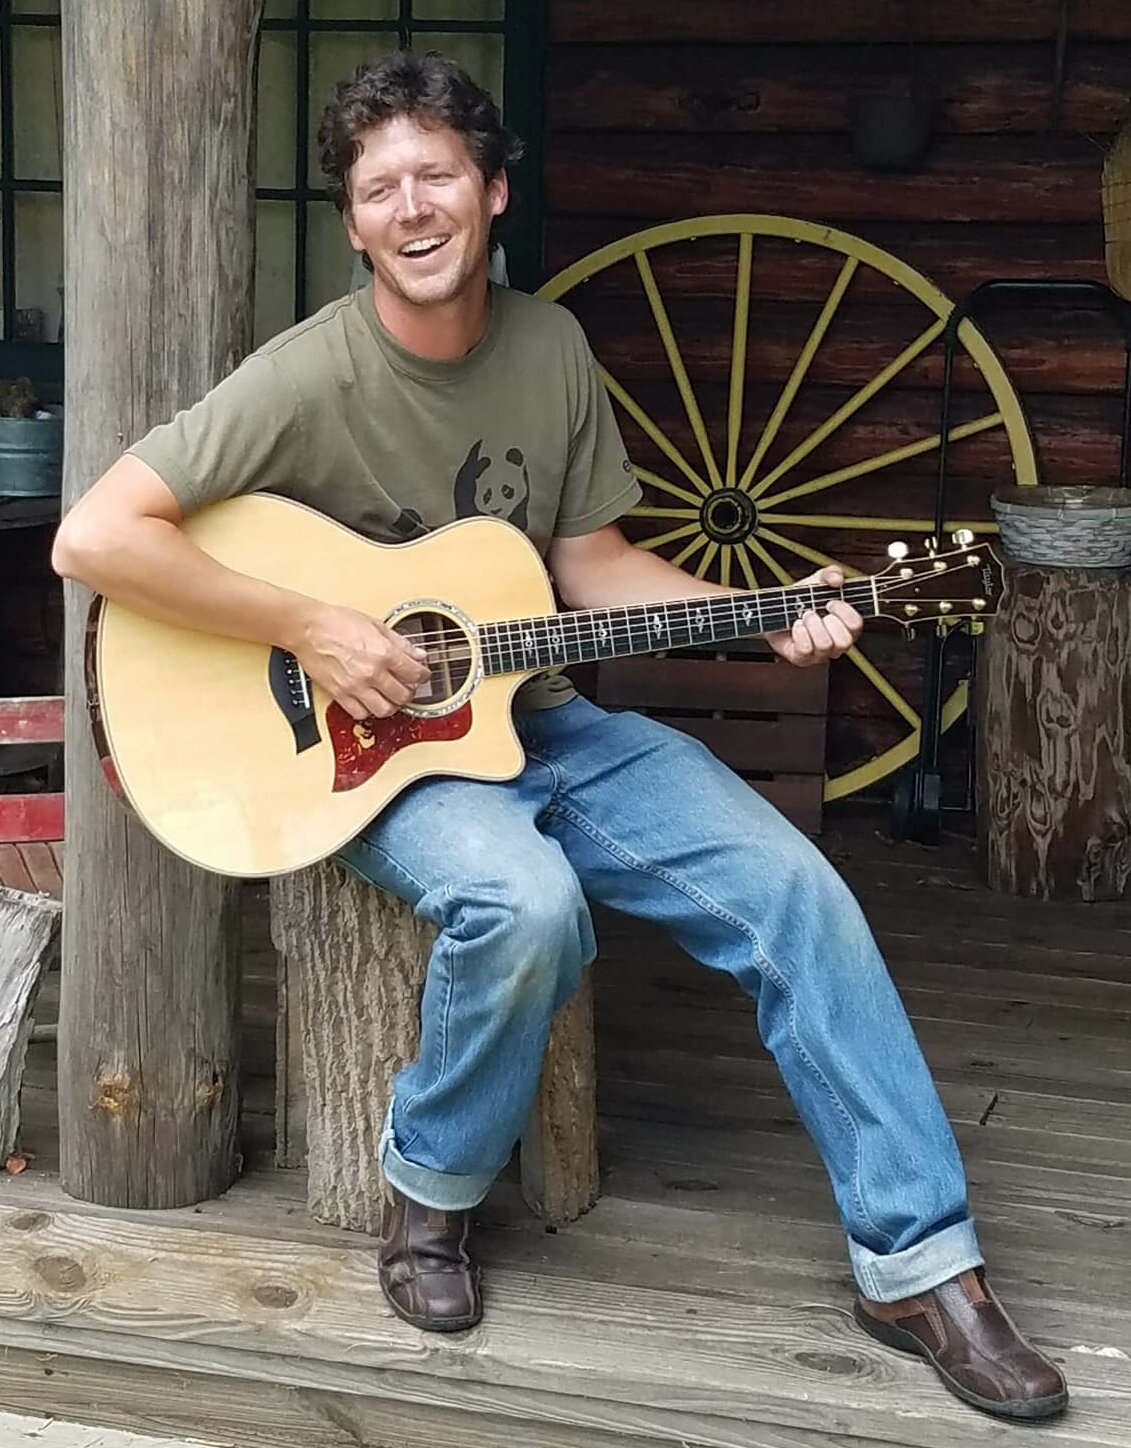 Live Music with Brandon Robey